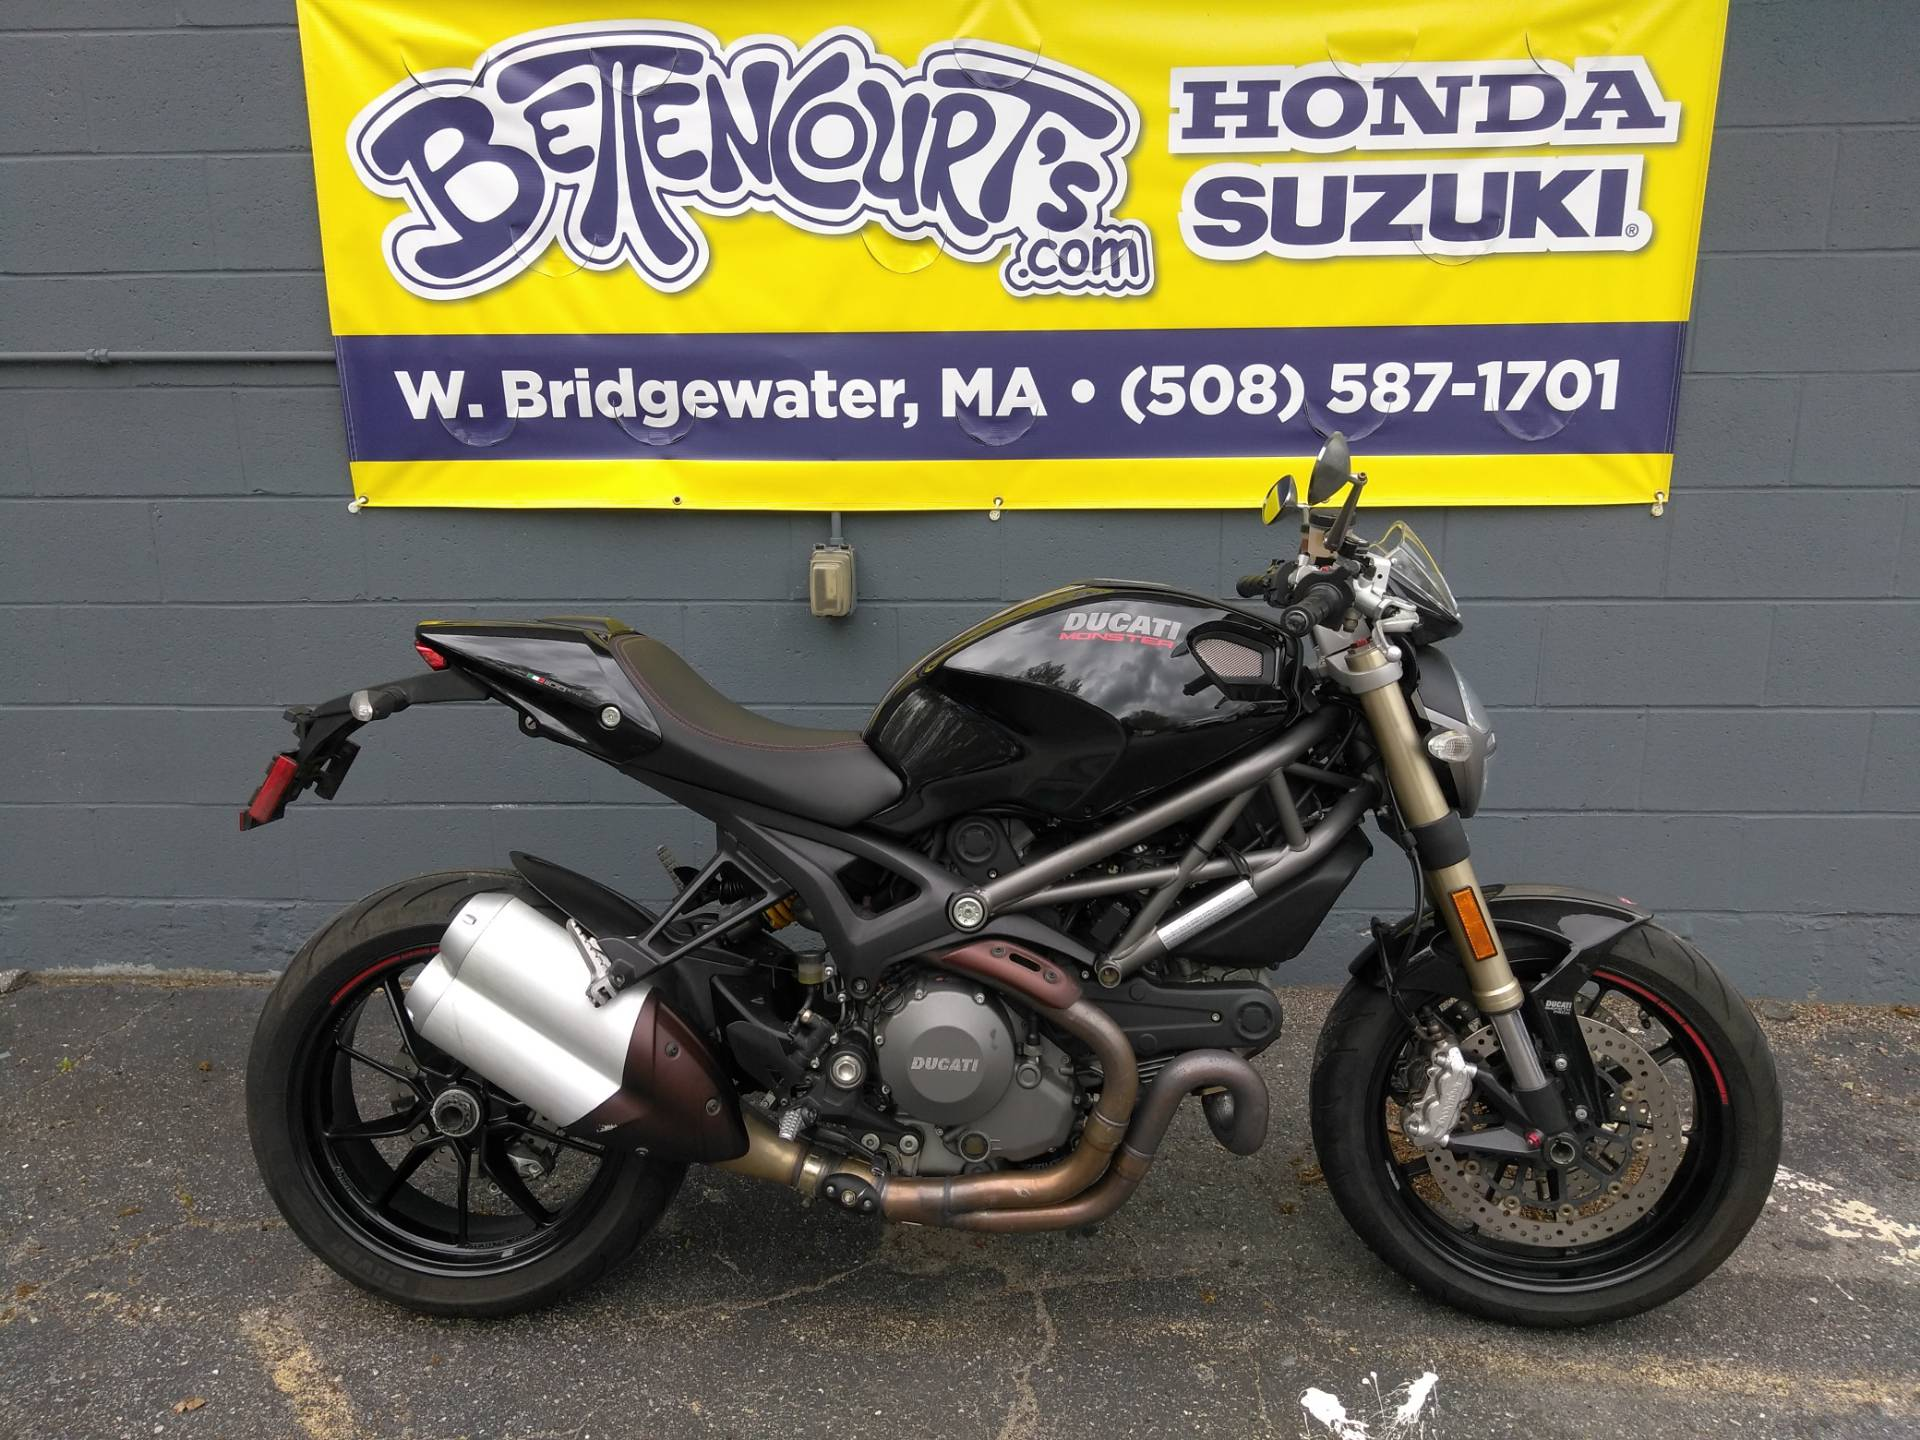 2012 Ducati Monster 1100 EVO in West Bridgewater, Massachusetts